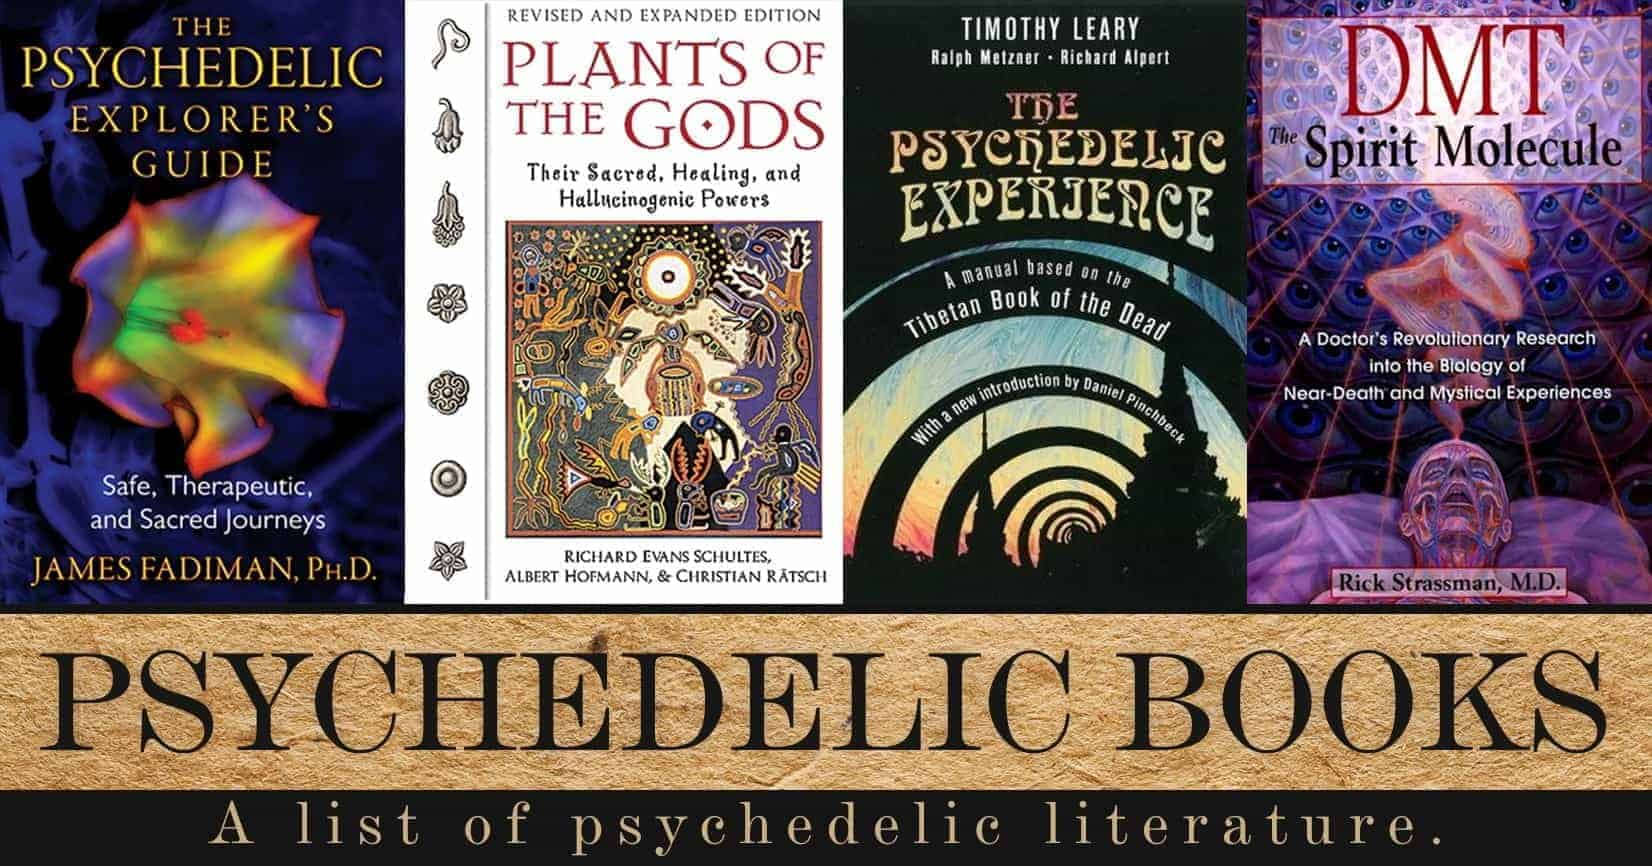 Best Psychedelic Books – Sociedelic